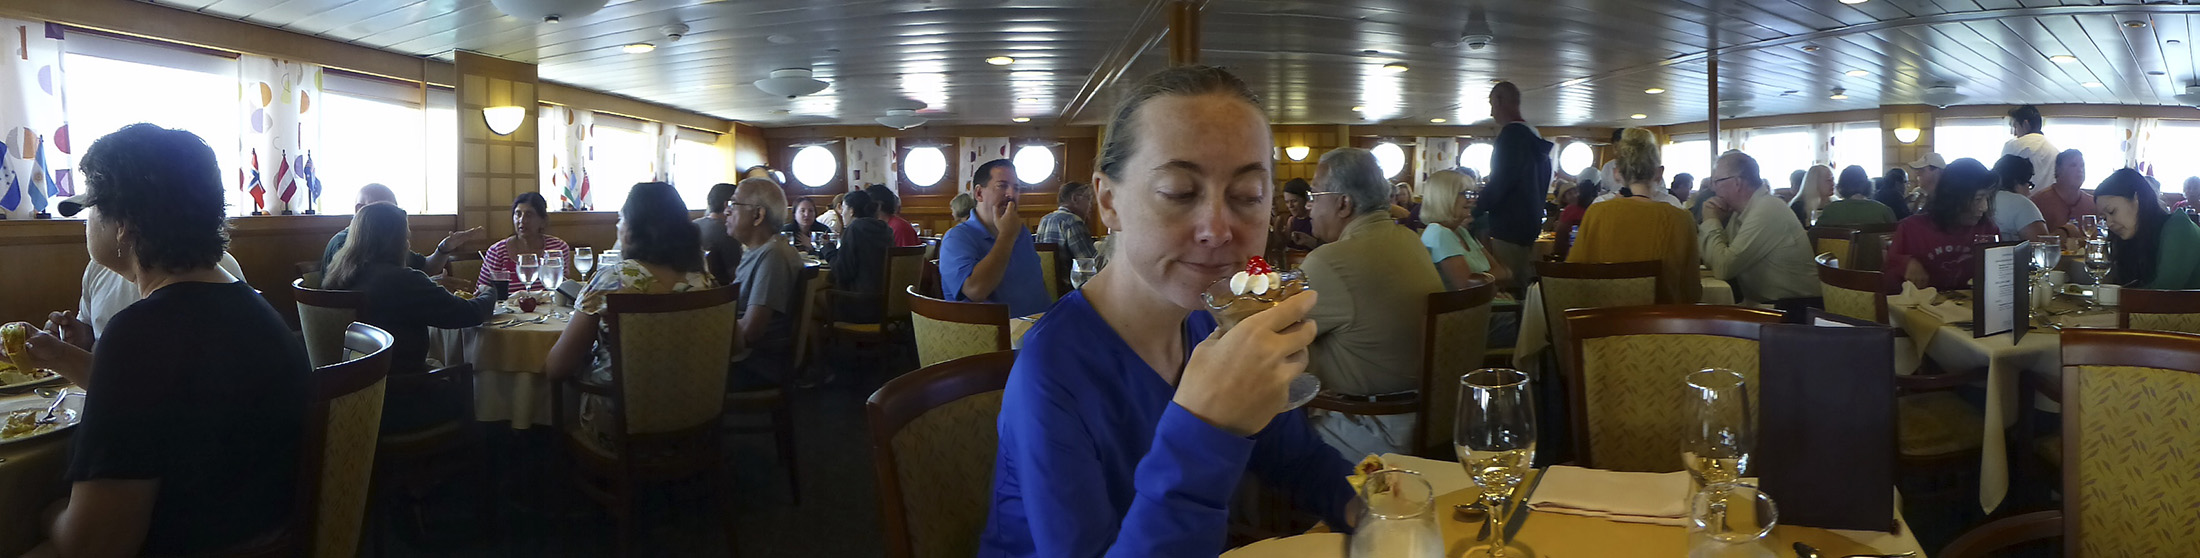 I put this picture into the blog against my better judgement. Katie thinks it's hilarious. I was making a face at the chocolate mousse, wondering how many calories I'm taking in every moment I sit in this dining room.